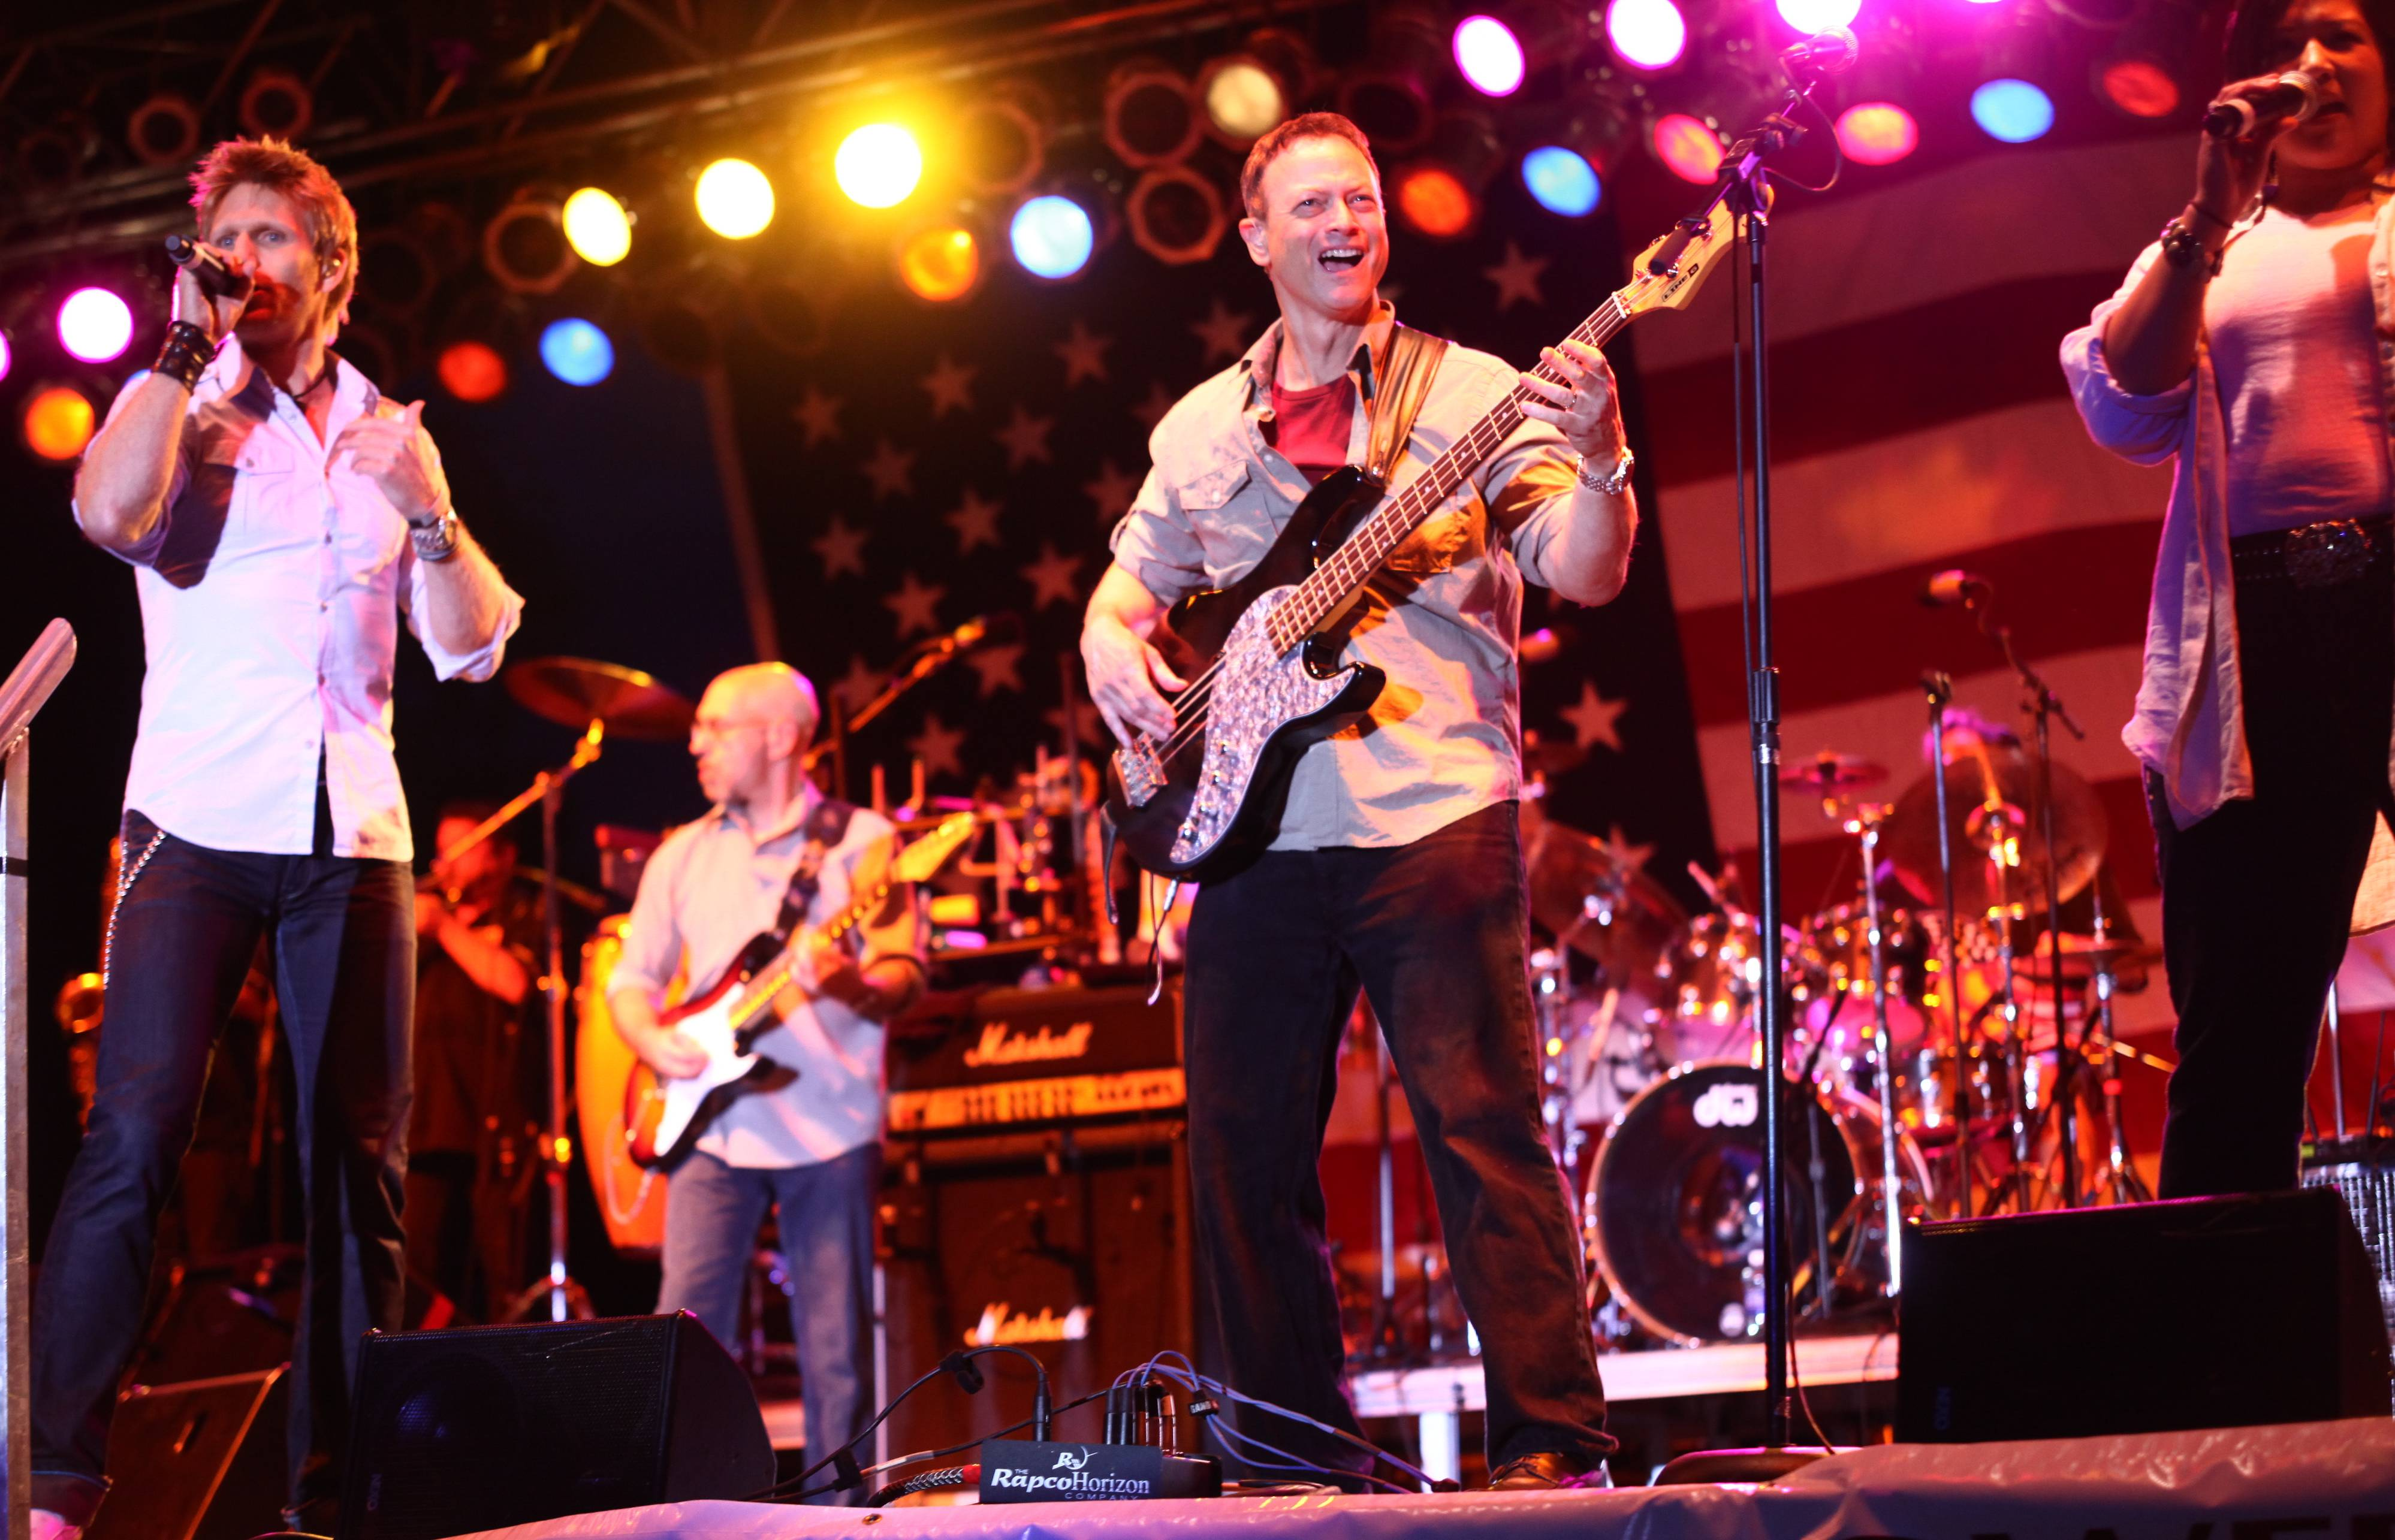 Gary Sinise, center, and the Lt. Dan Band will return July 19 to Cantigny Park in Wheaton for the annual Rockin' for the Troops concert to benefit Operation Support Our Troops America.